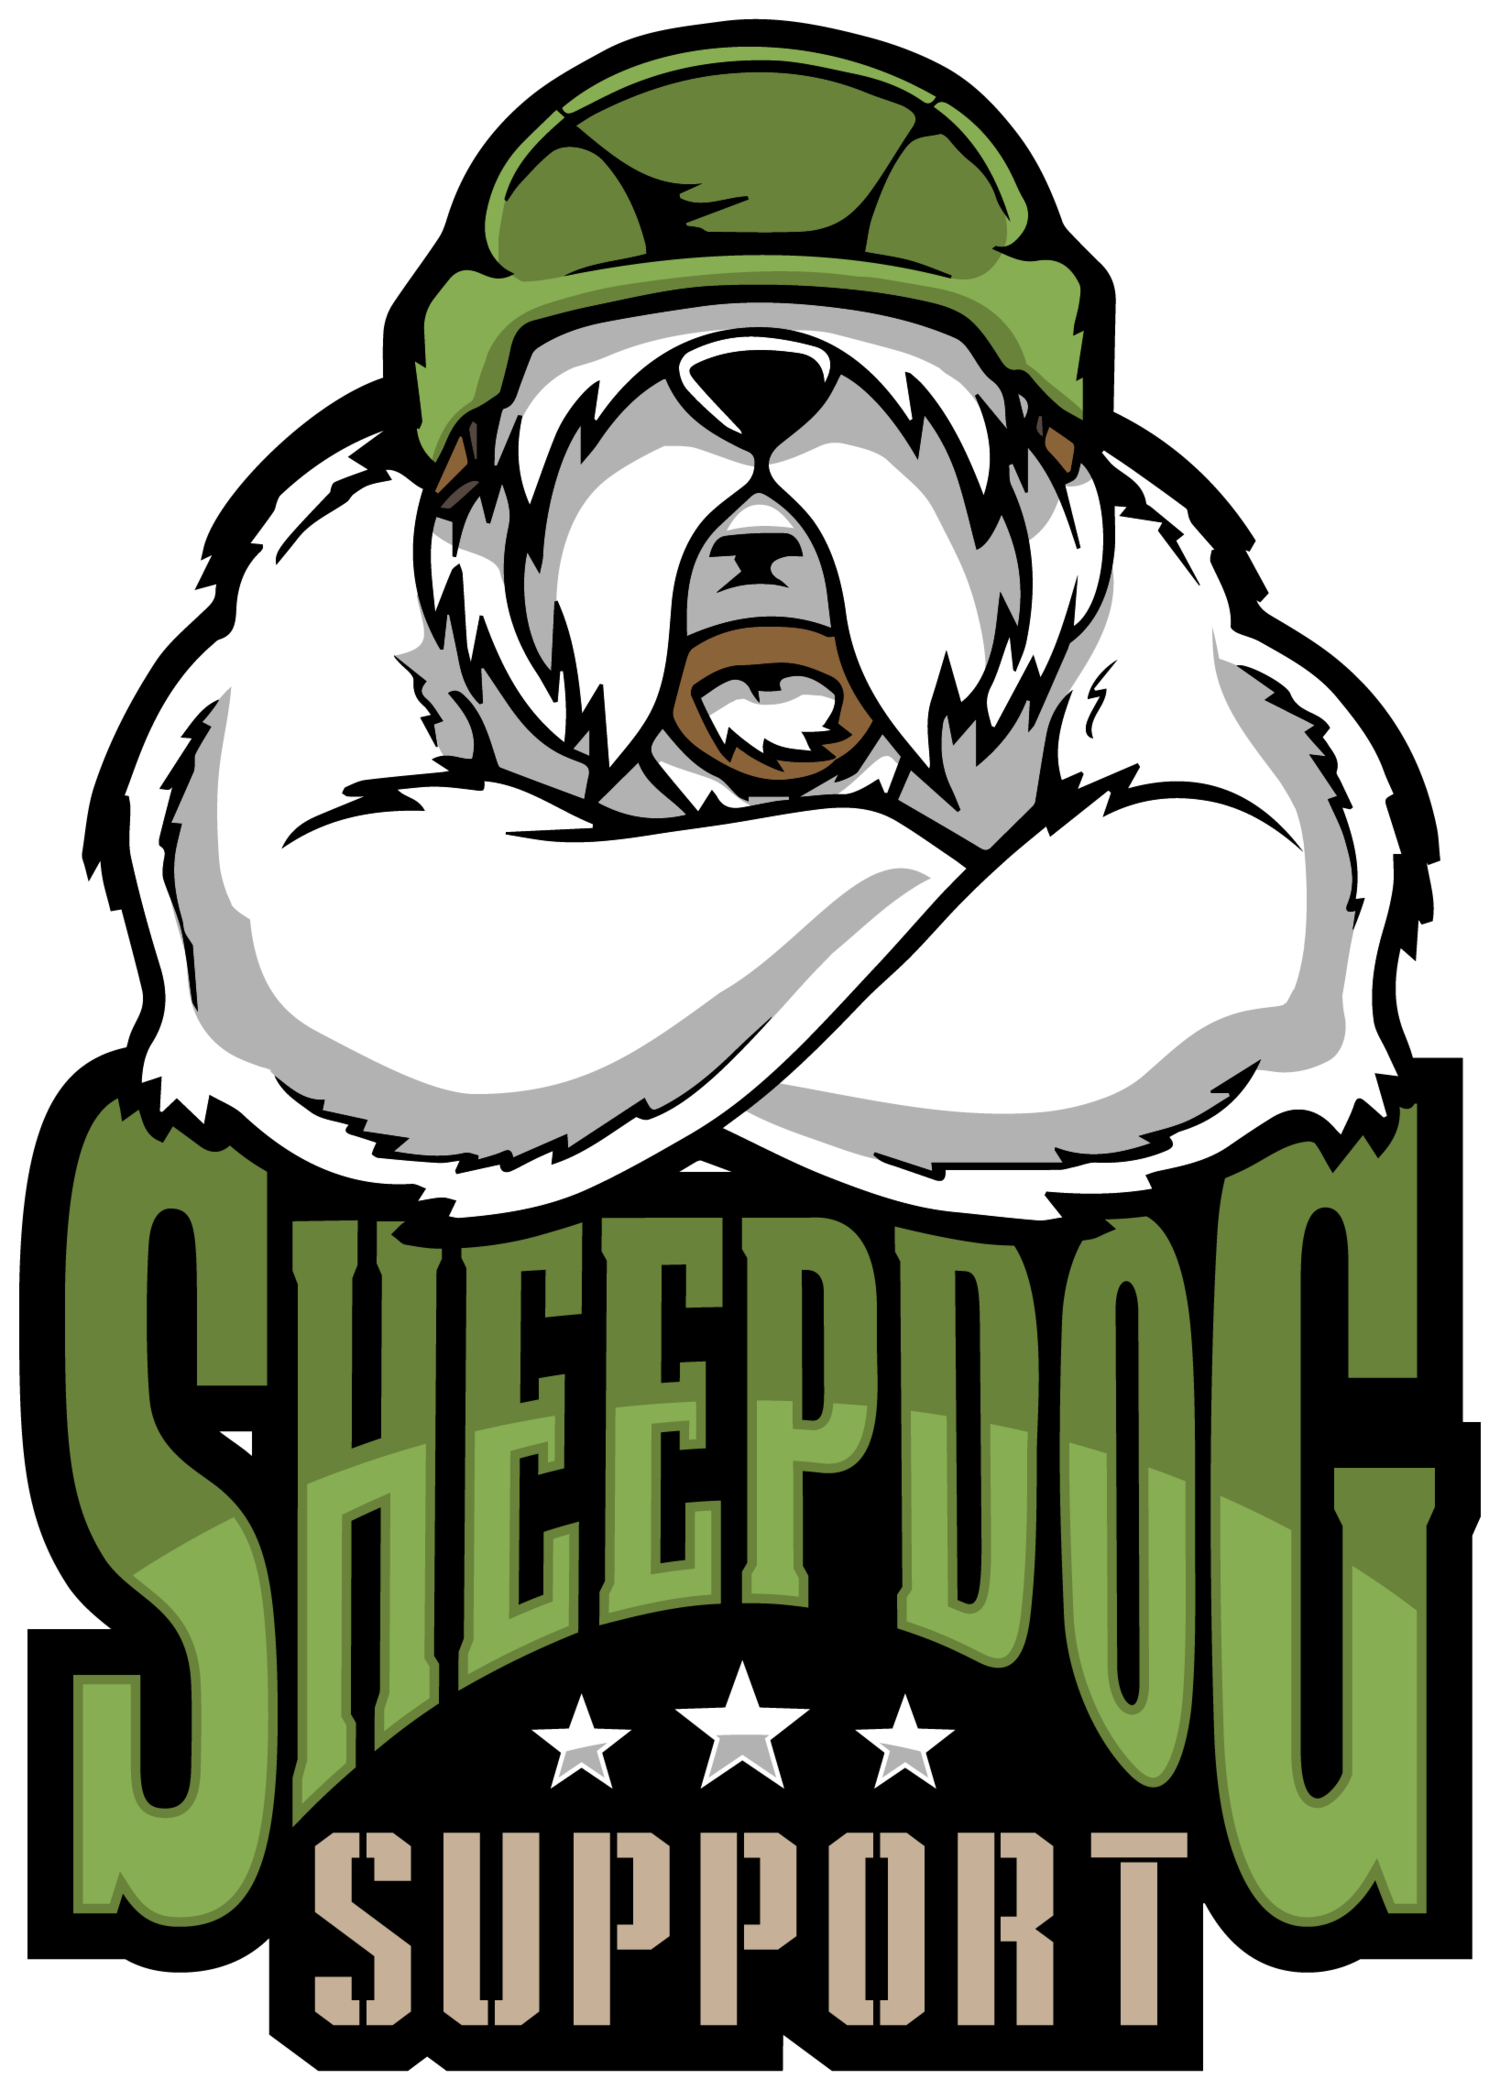 Sheepdog Support Co.